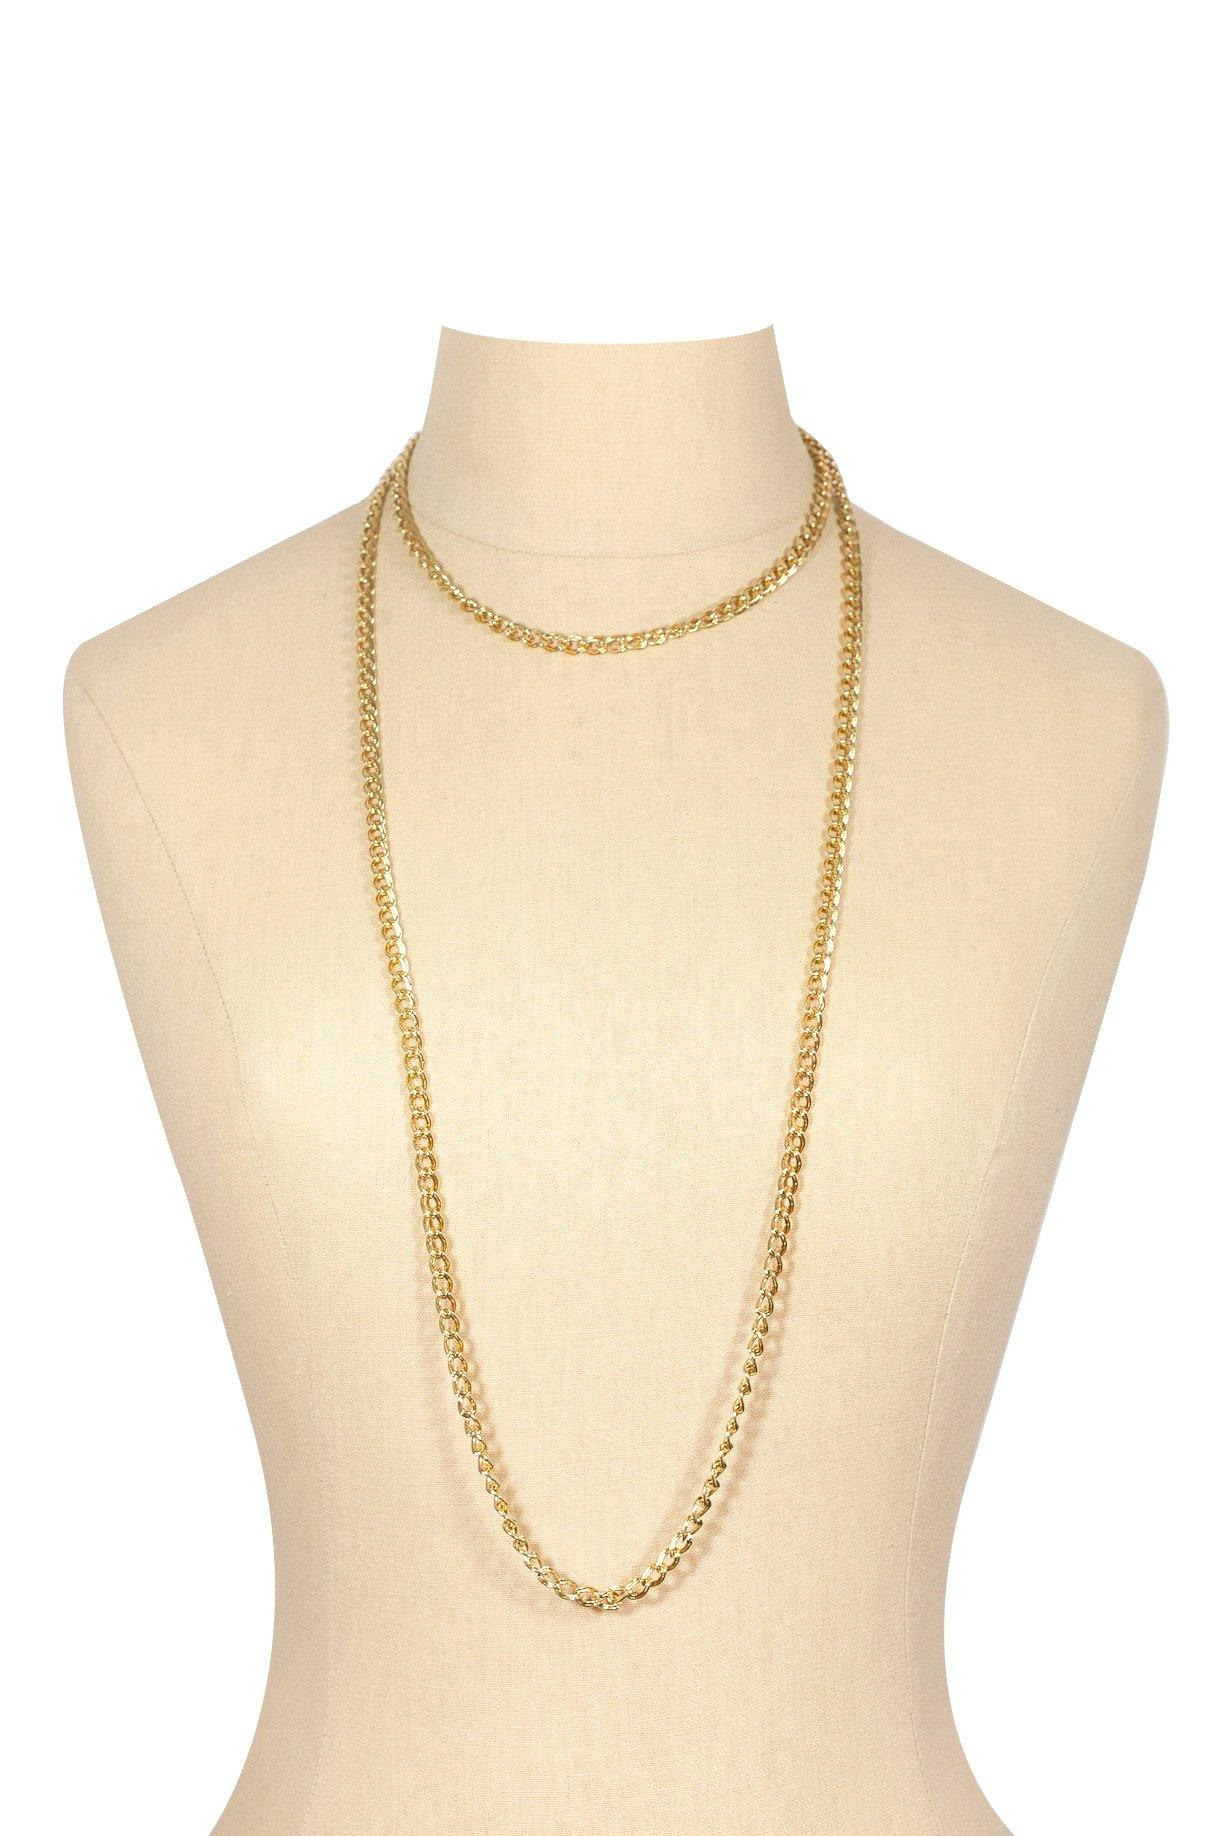 80's__Monet__Classic Long Link Necklace